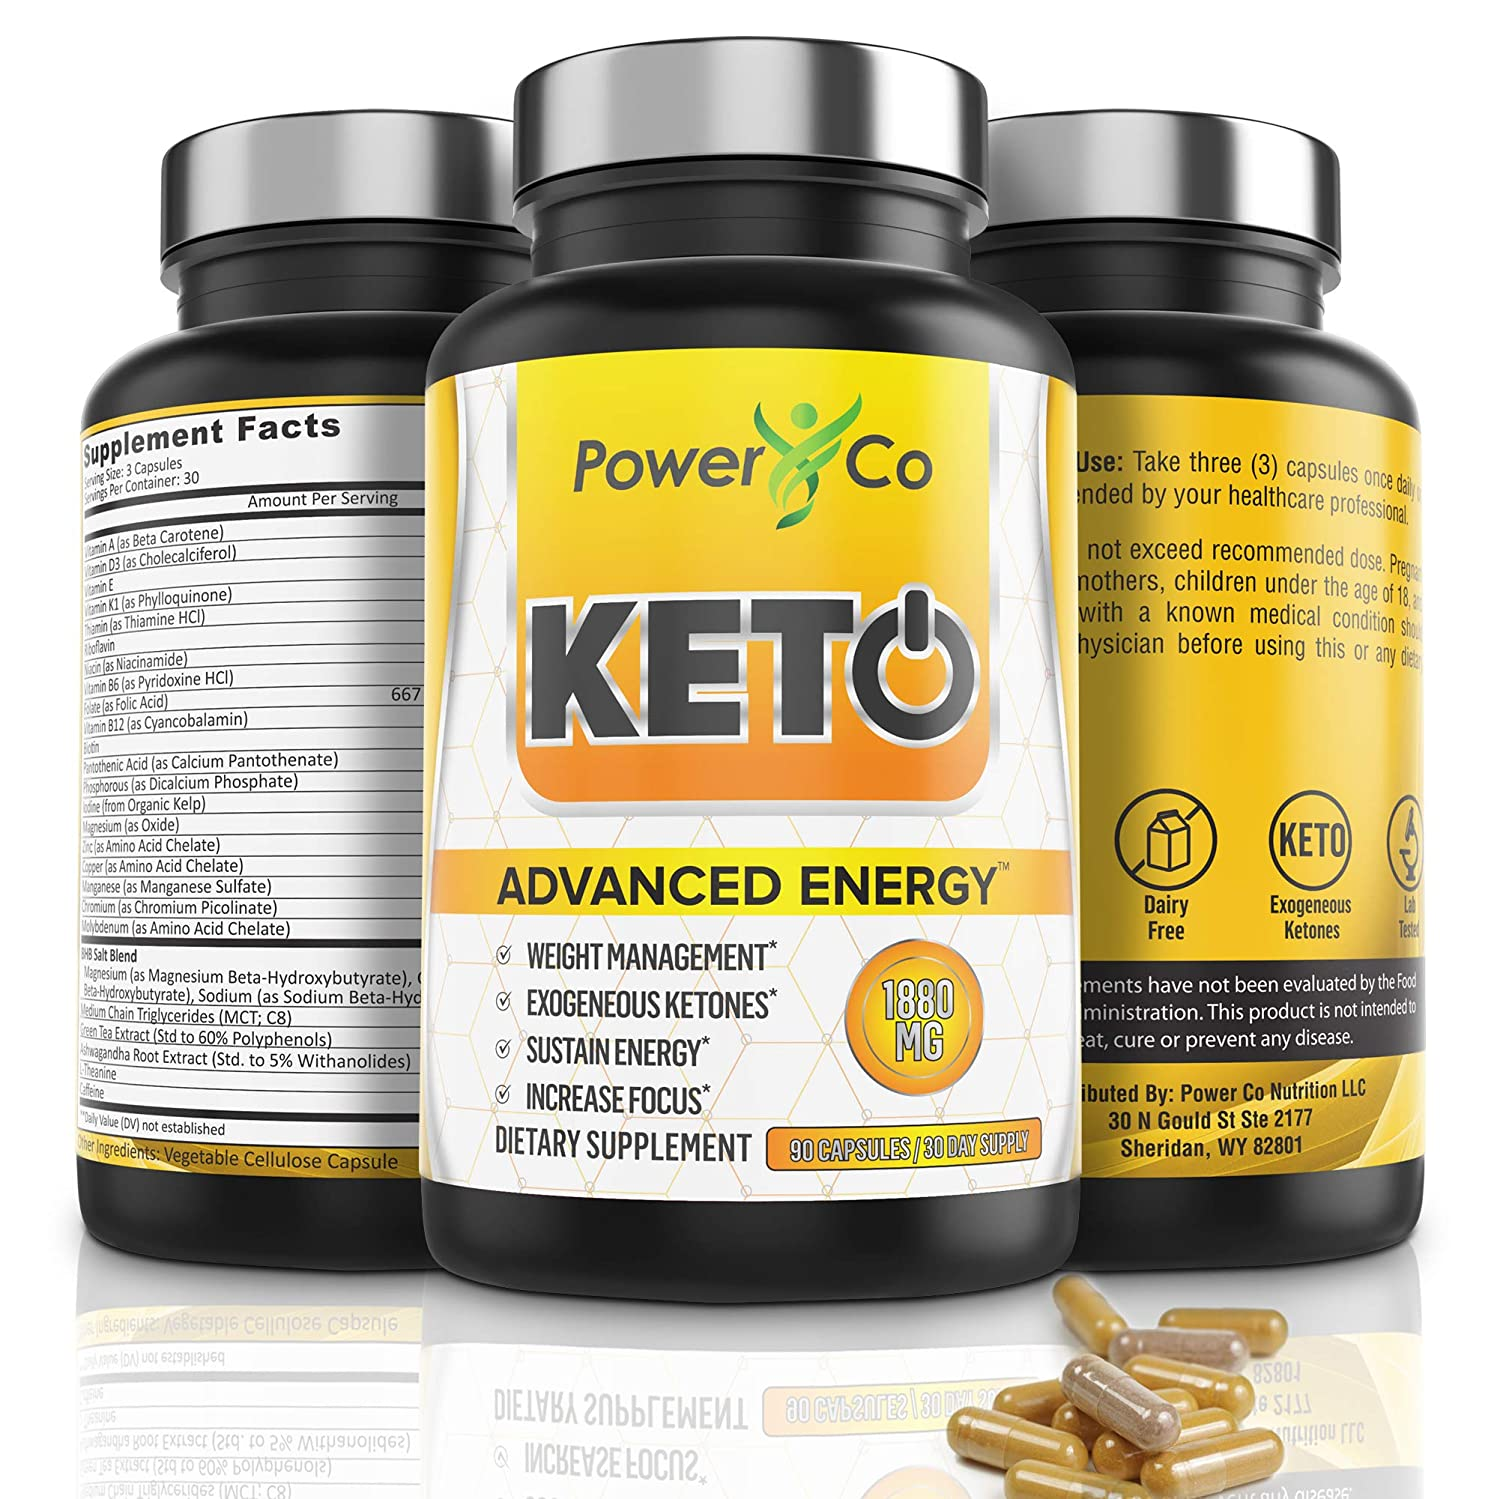 Keto Diet Pills for Energy – Powerful Metabolism Boost – Ketosis Supplement, Manages Cravings, Increases Focus – BHB Exogenous Ketones, C8 MCT Oil, Electrolytes, Ashwagandha – 90 Capsules by PowerCo